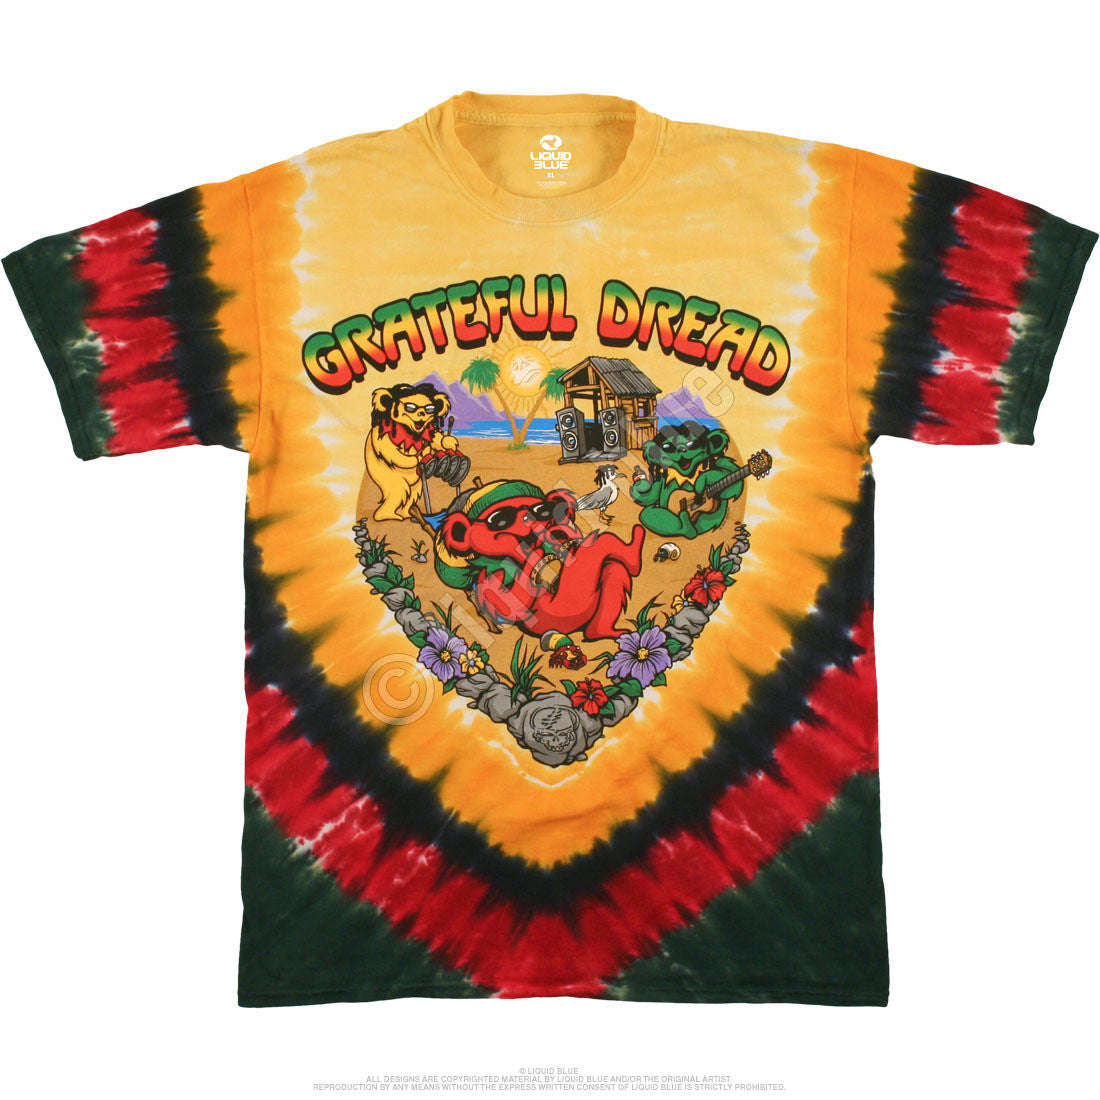 Grateful Dead Positive Vibrations Tie Dye T Shirt